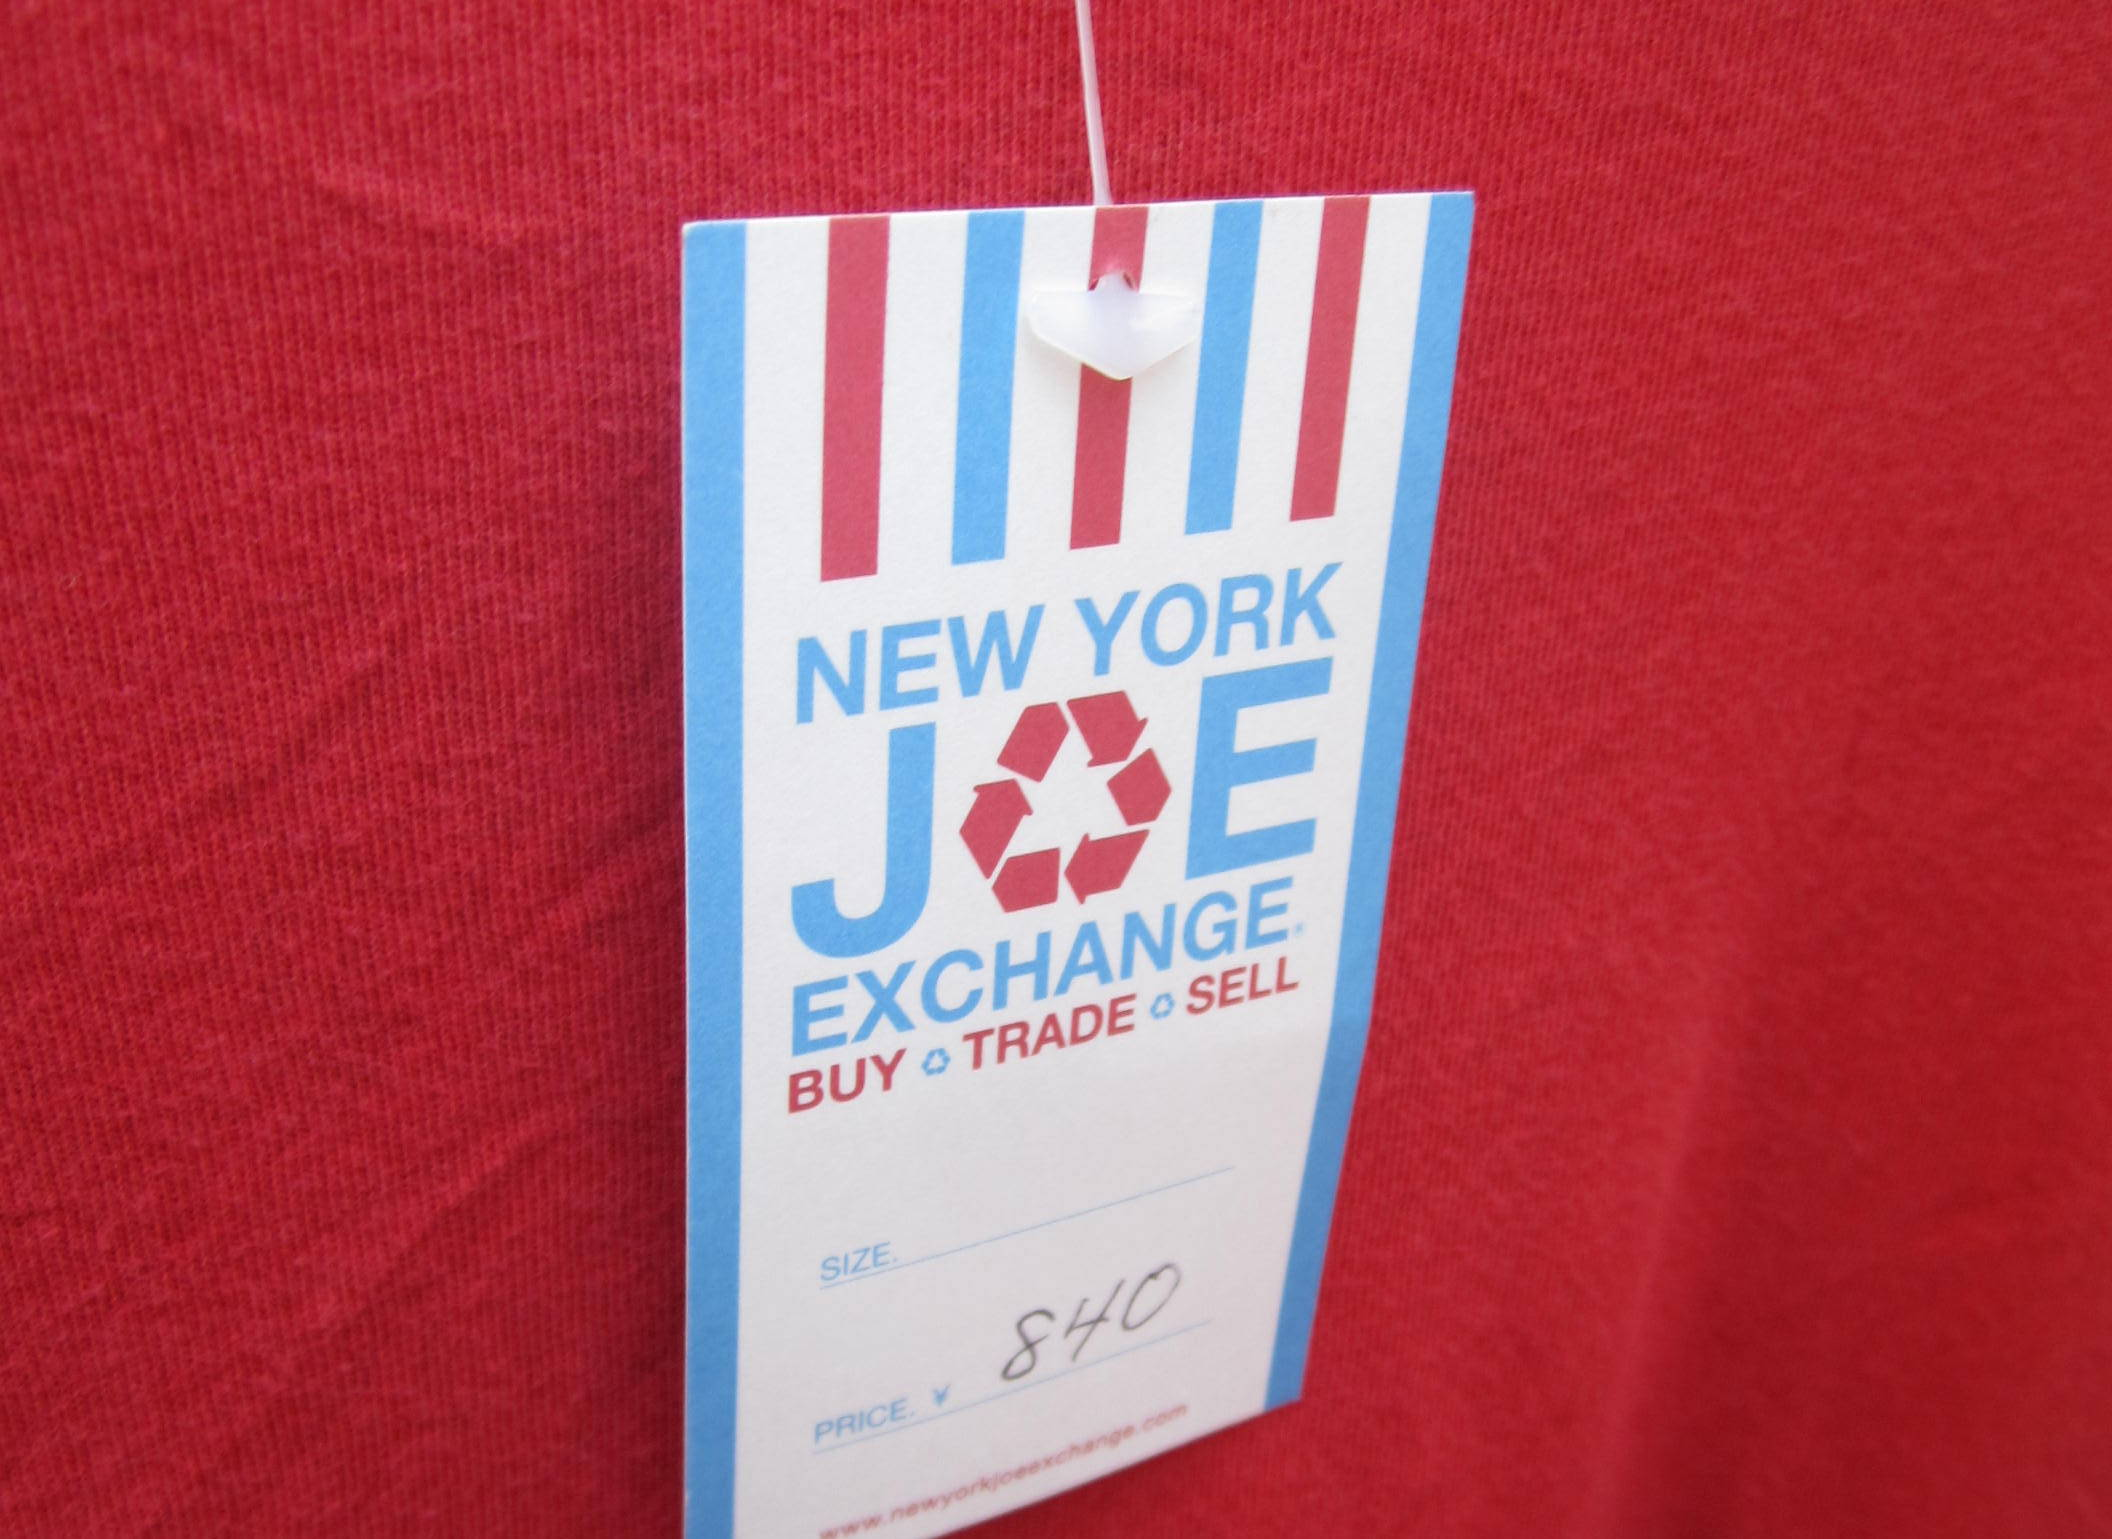 Joe Exchange: Buy, Sell, and Trade your way into Japanese Fashion